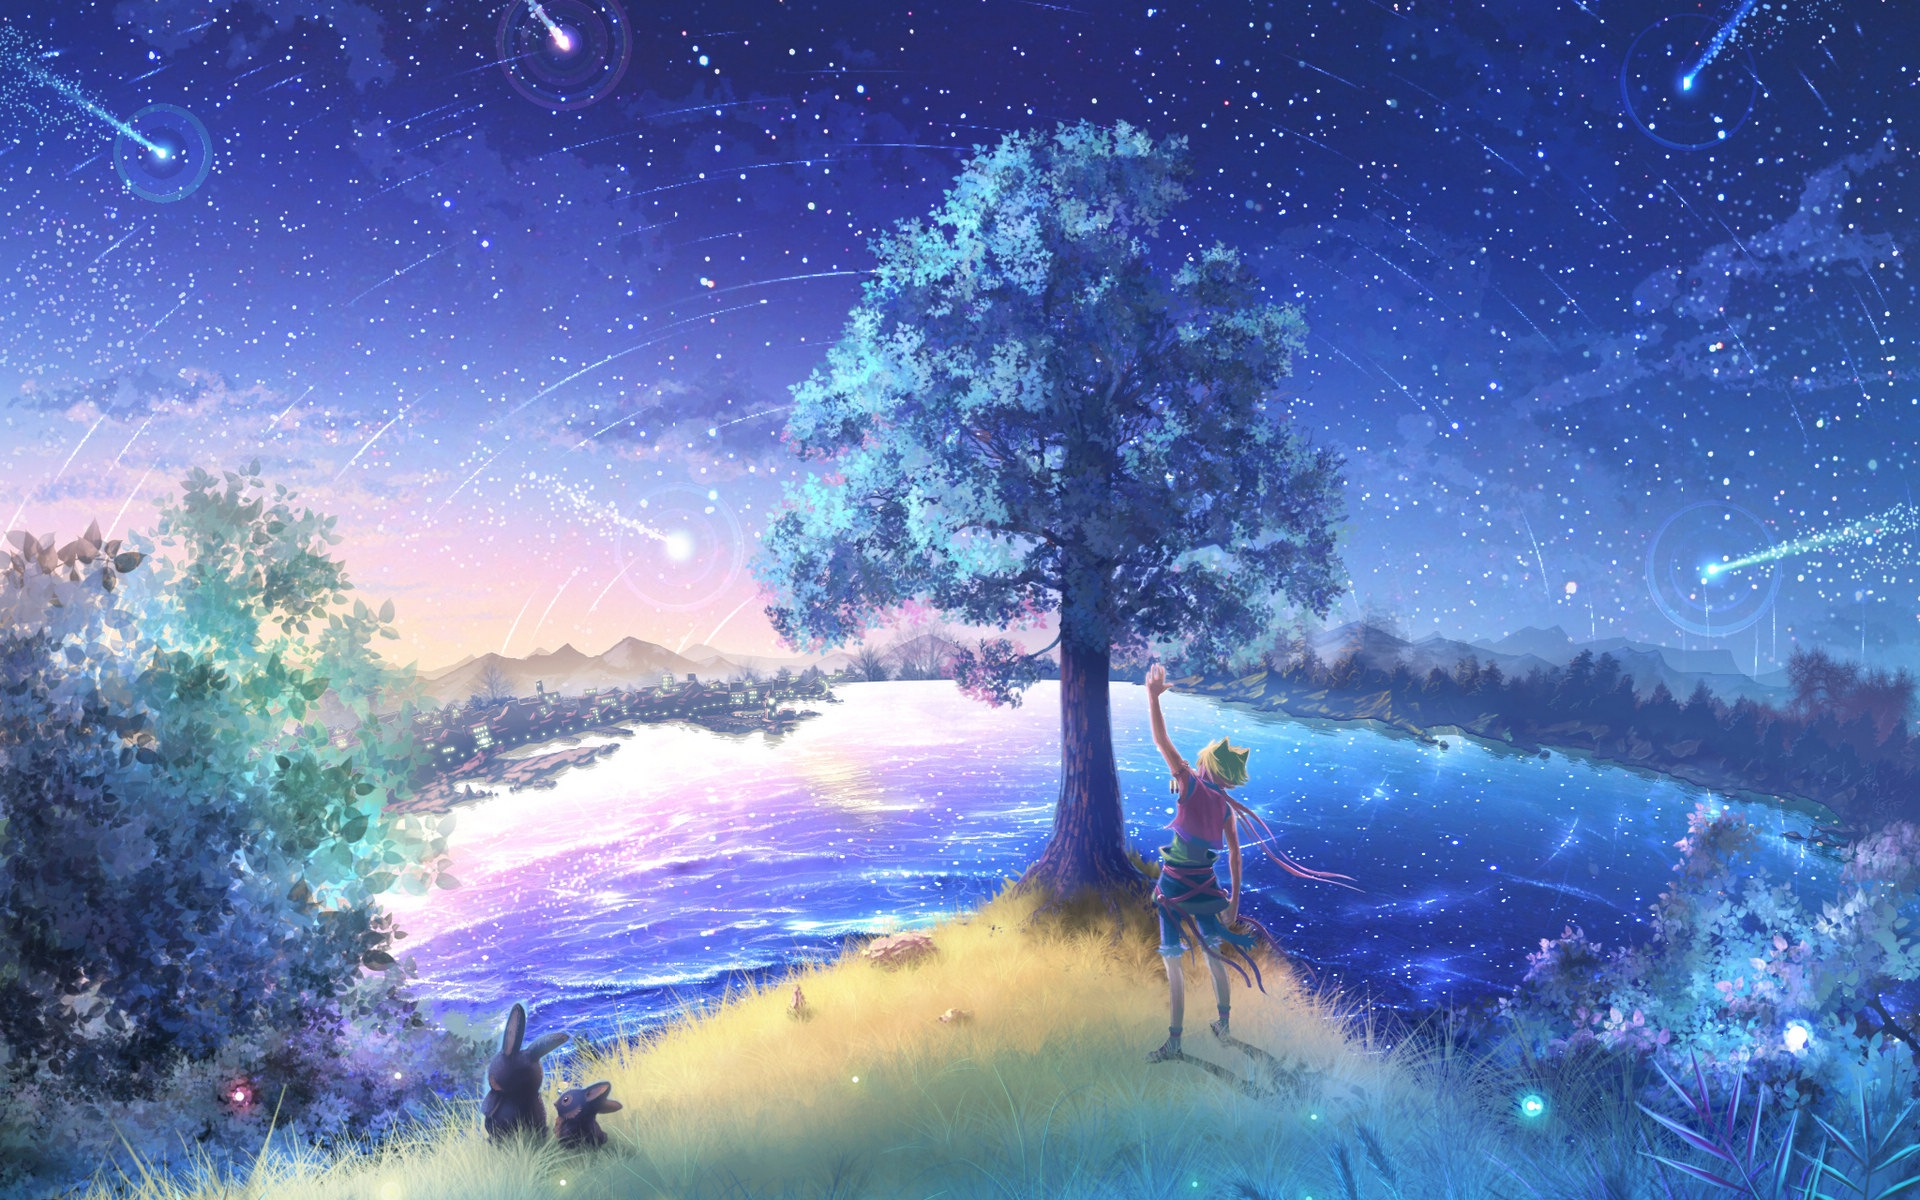 Firefly Summer Beautiful Anime Wallpaper 14